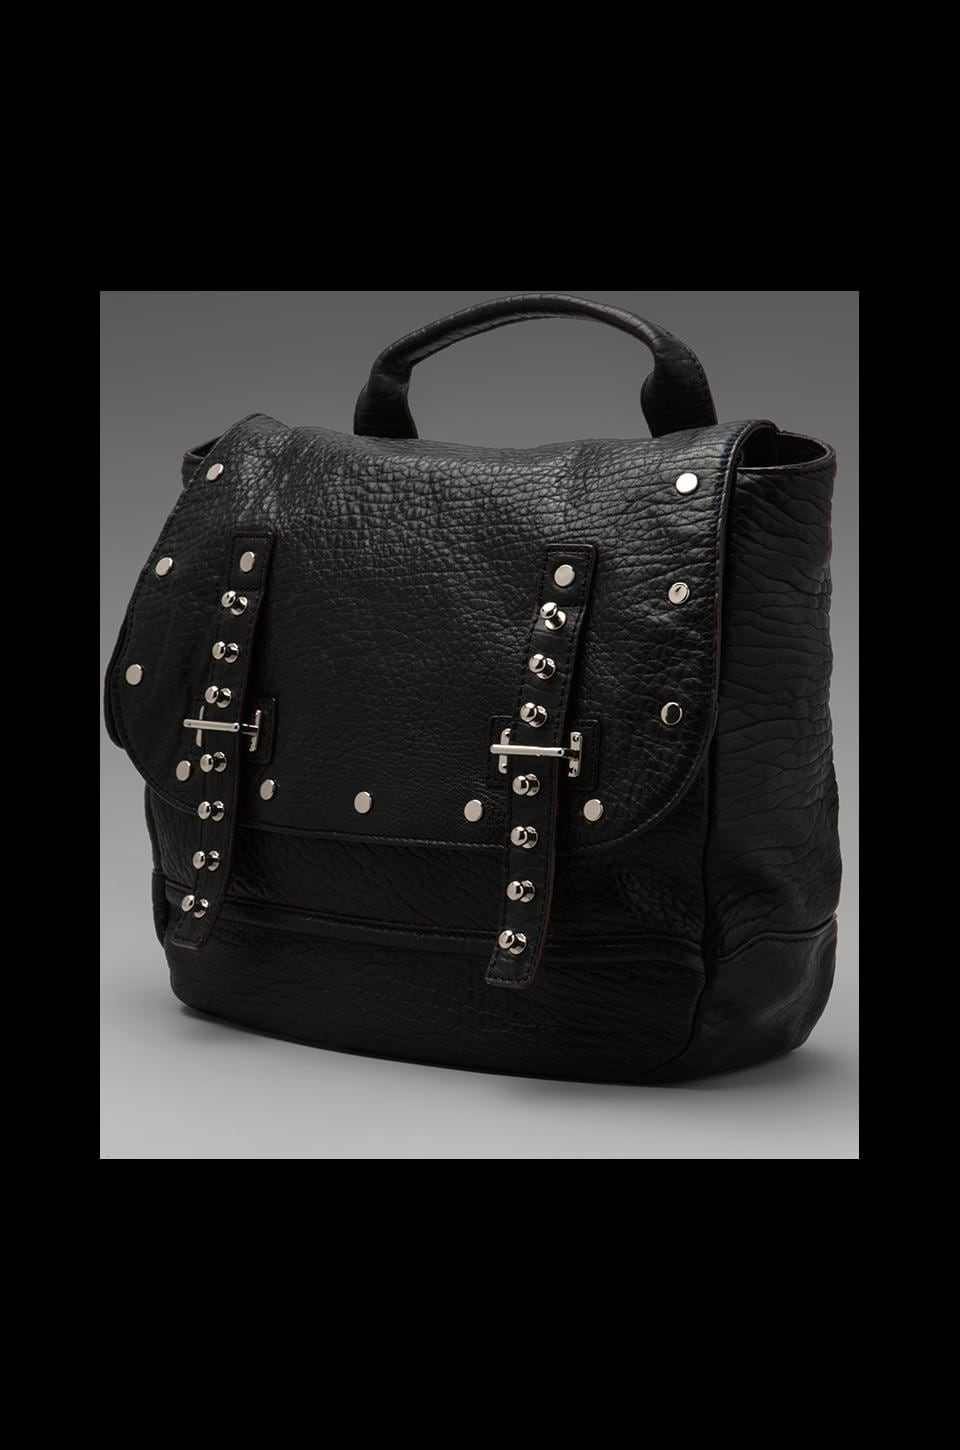 Rebecca Minkoff Logan Bag in Black